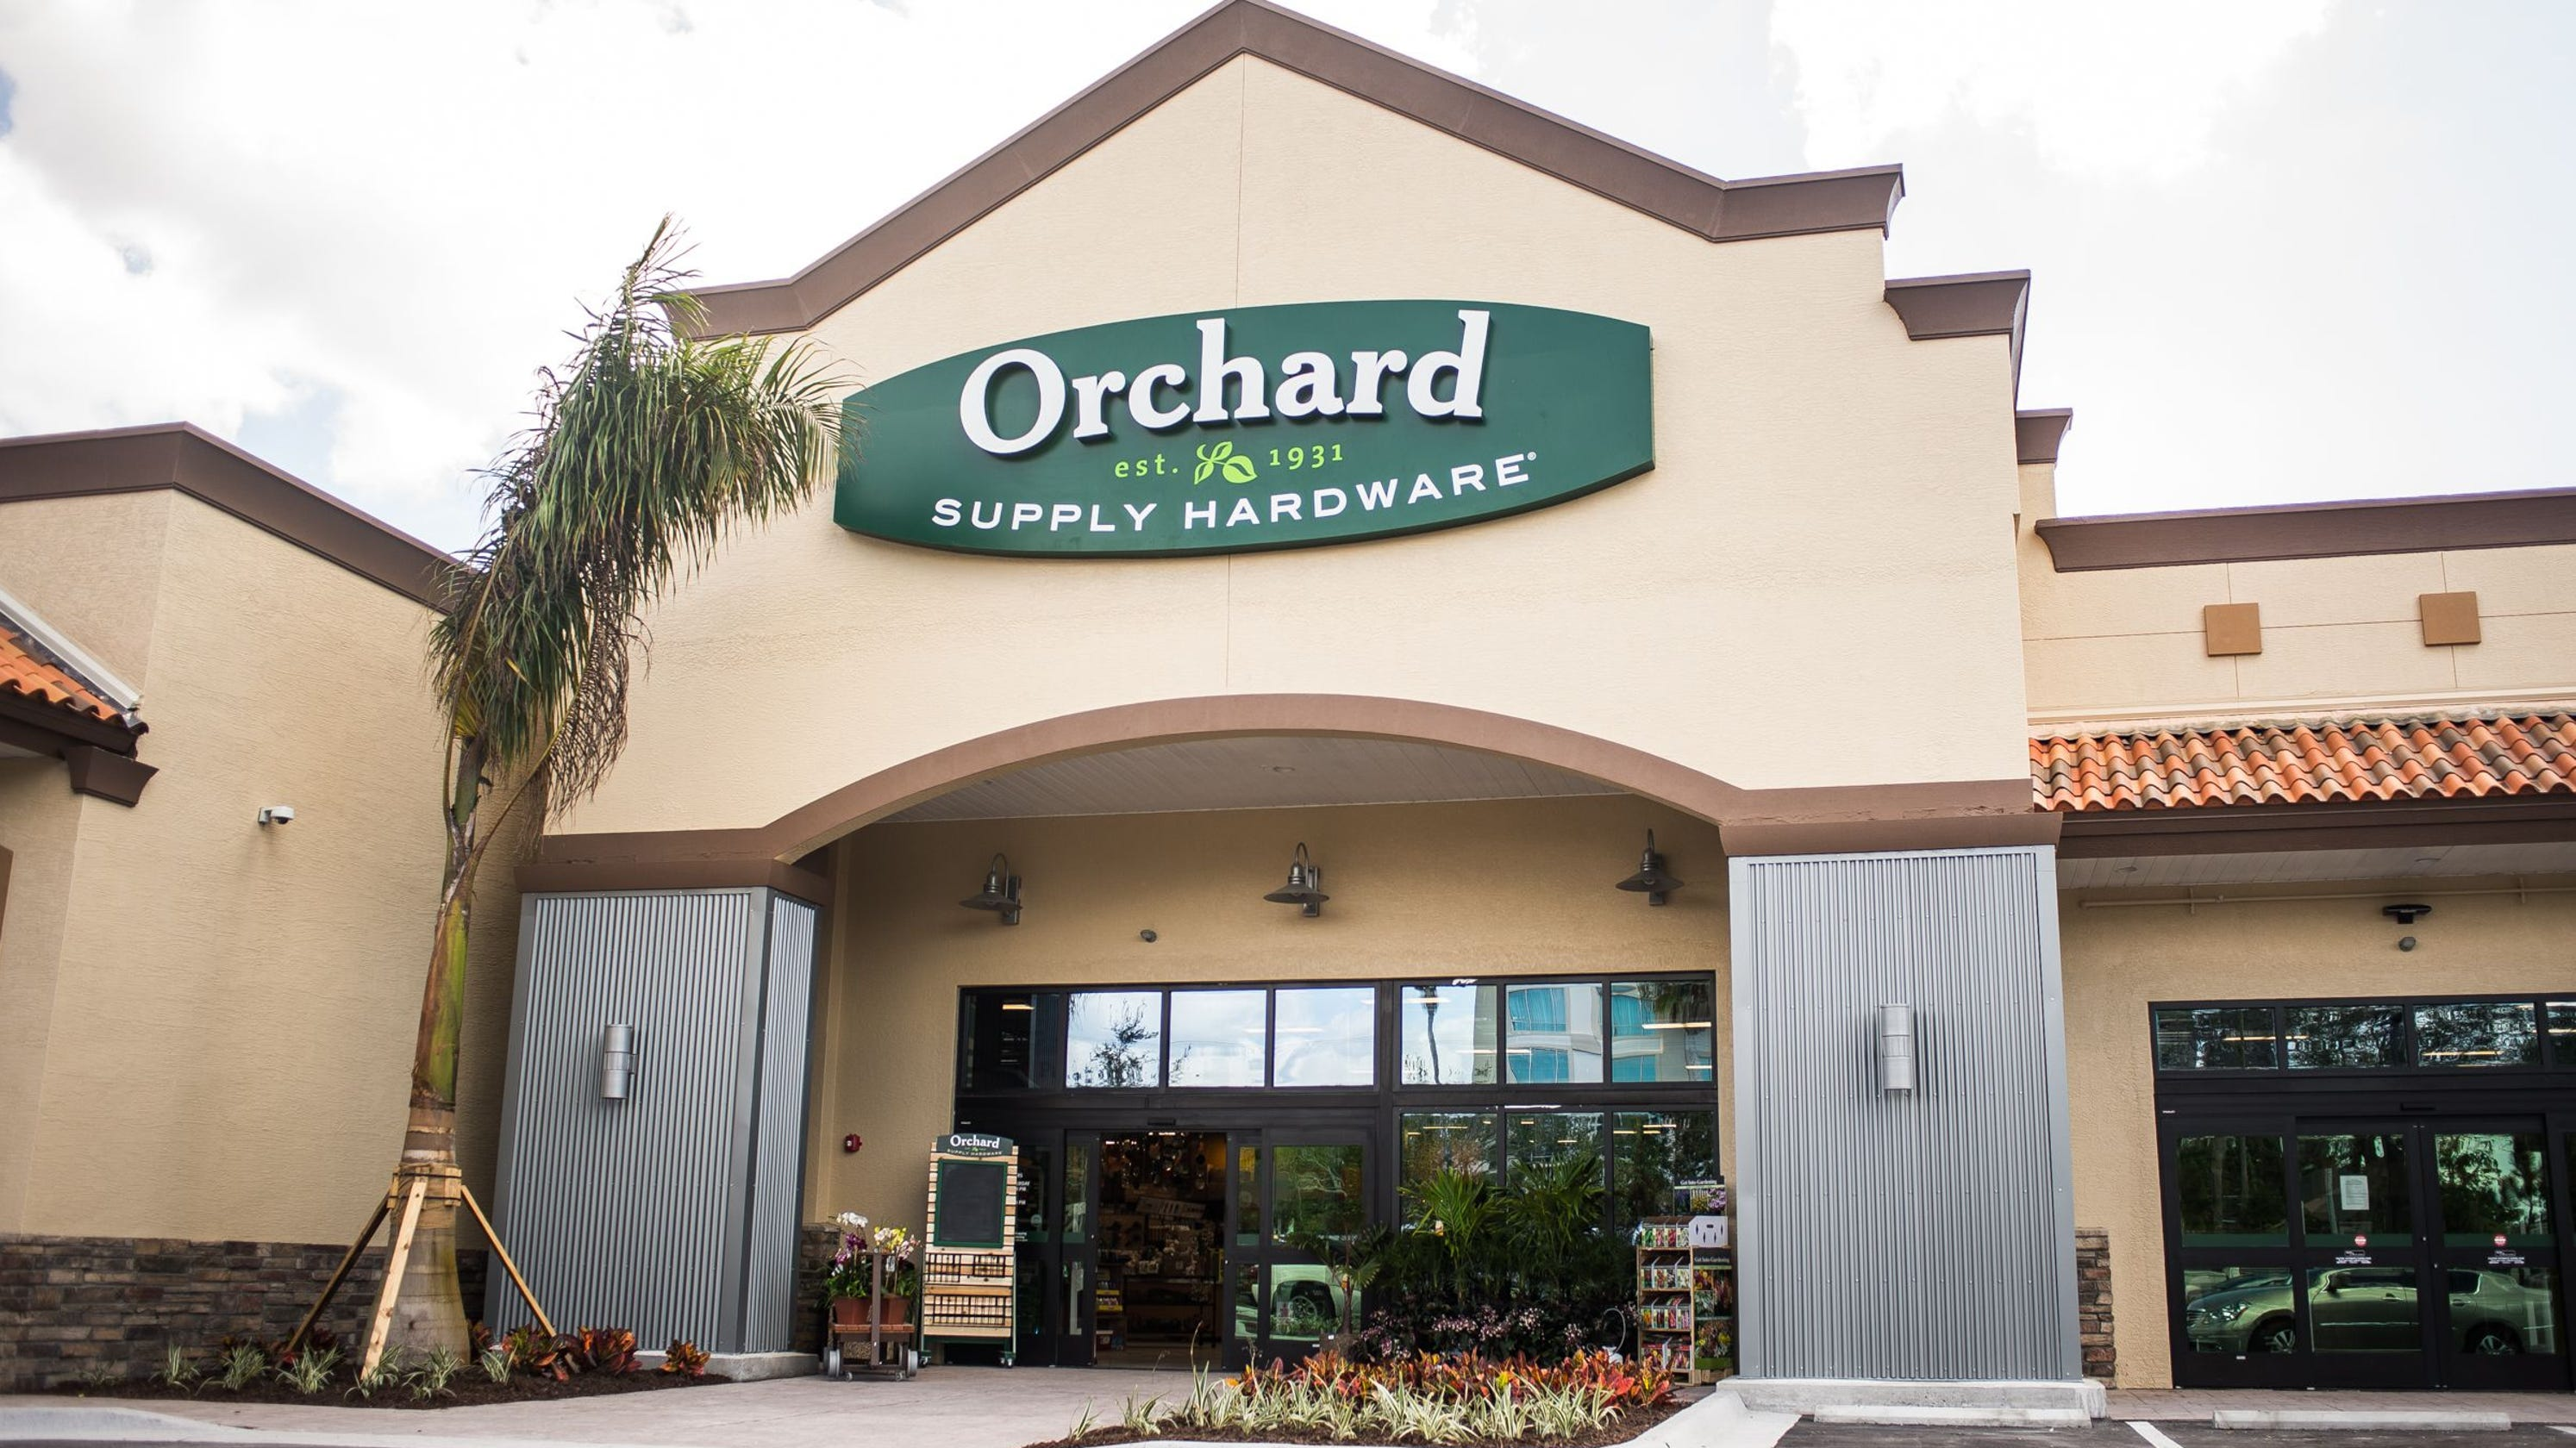 Lowes to close all orchard supply hardware stores in u s including two in naples area